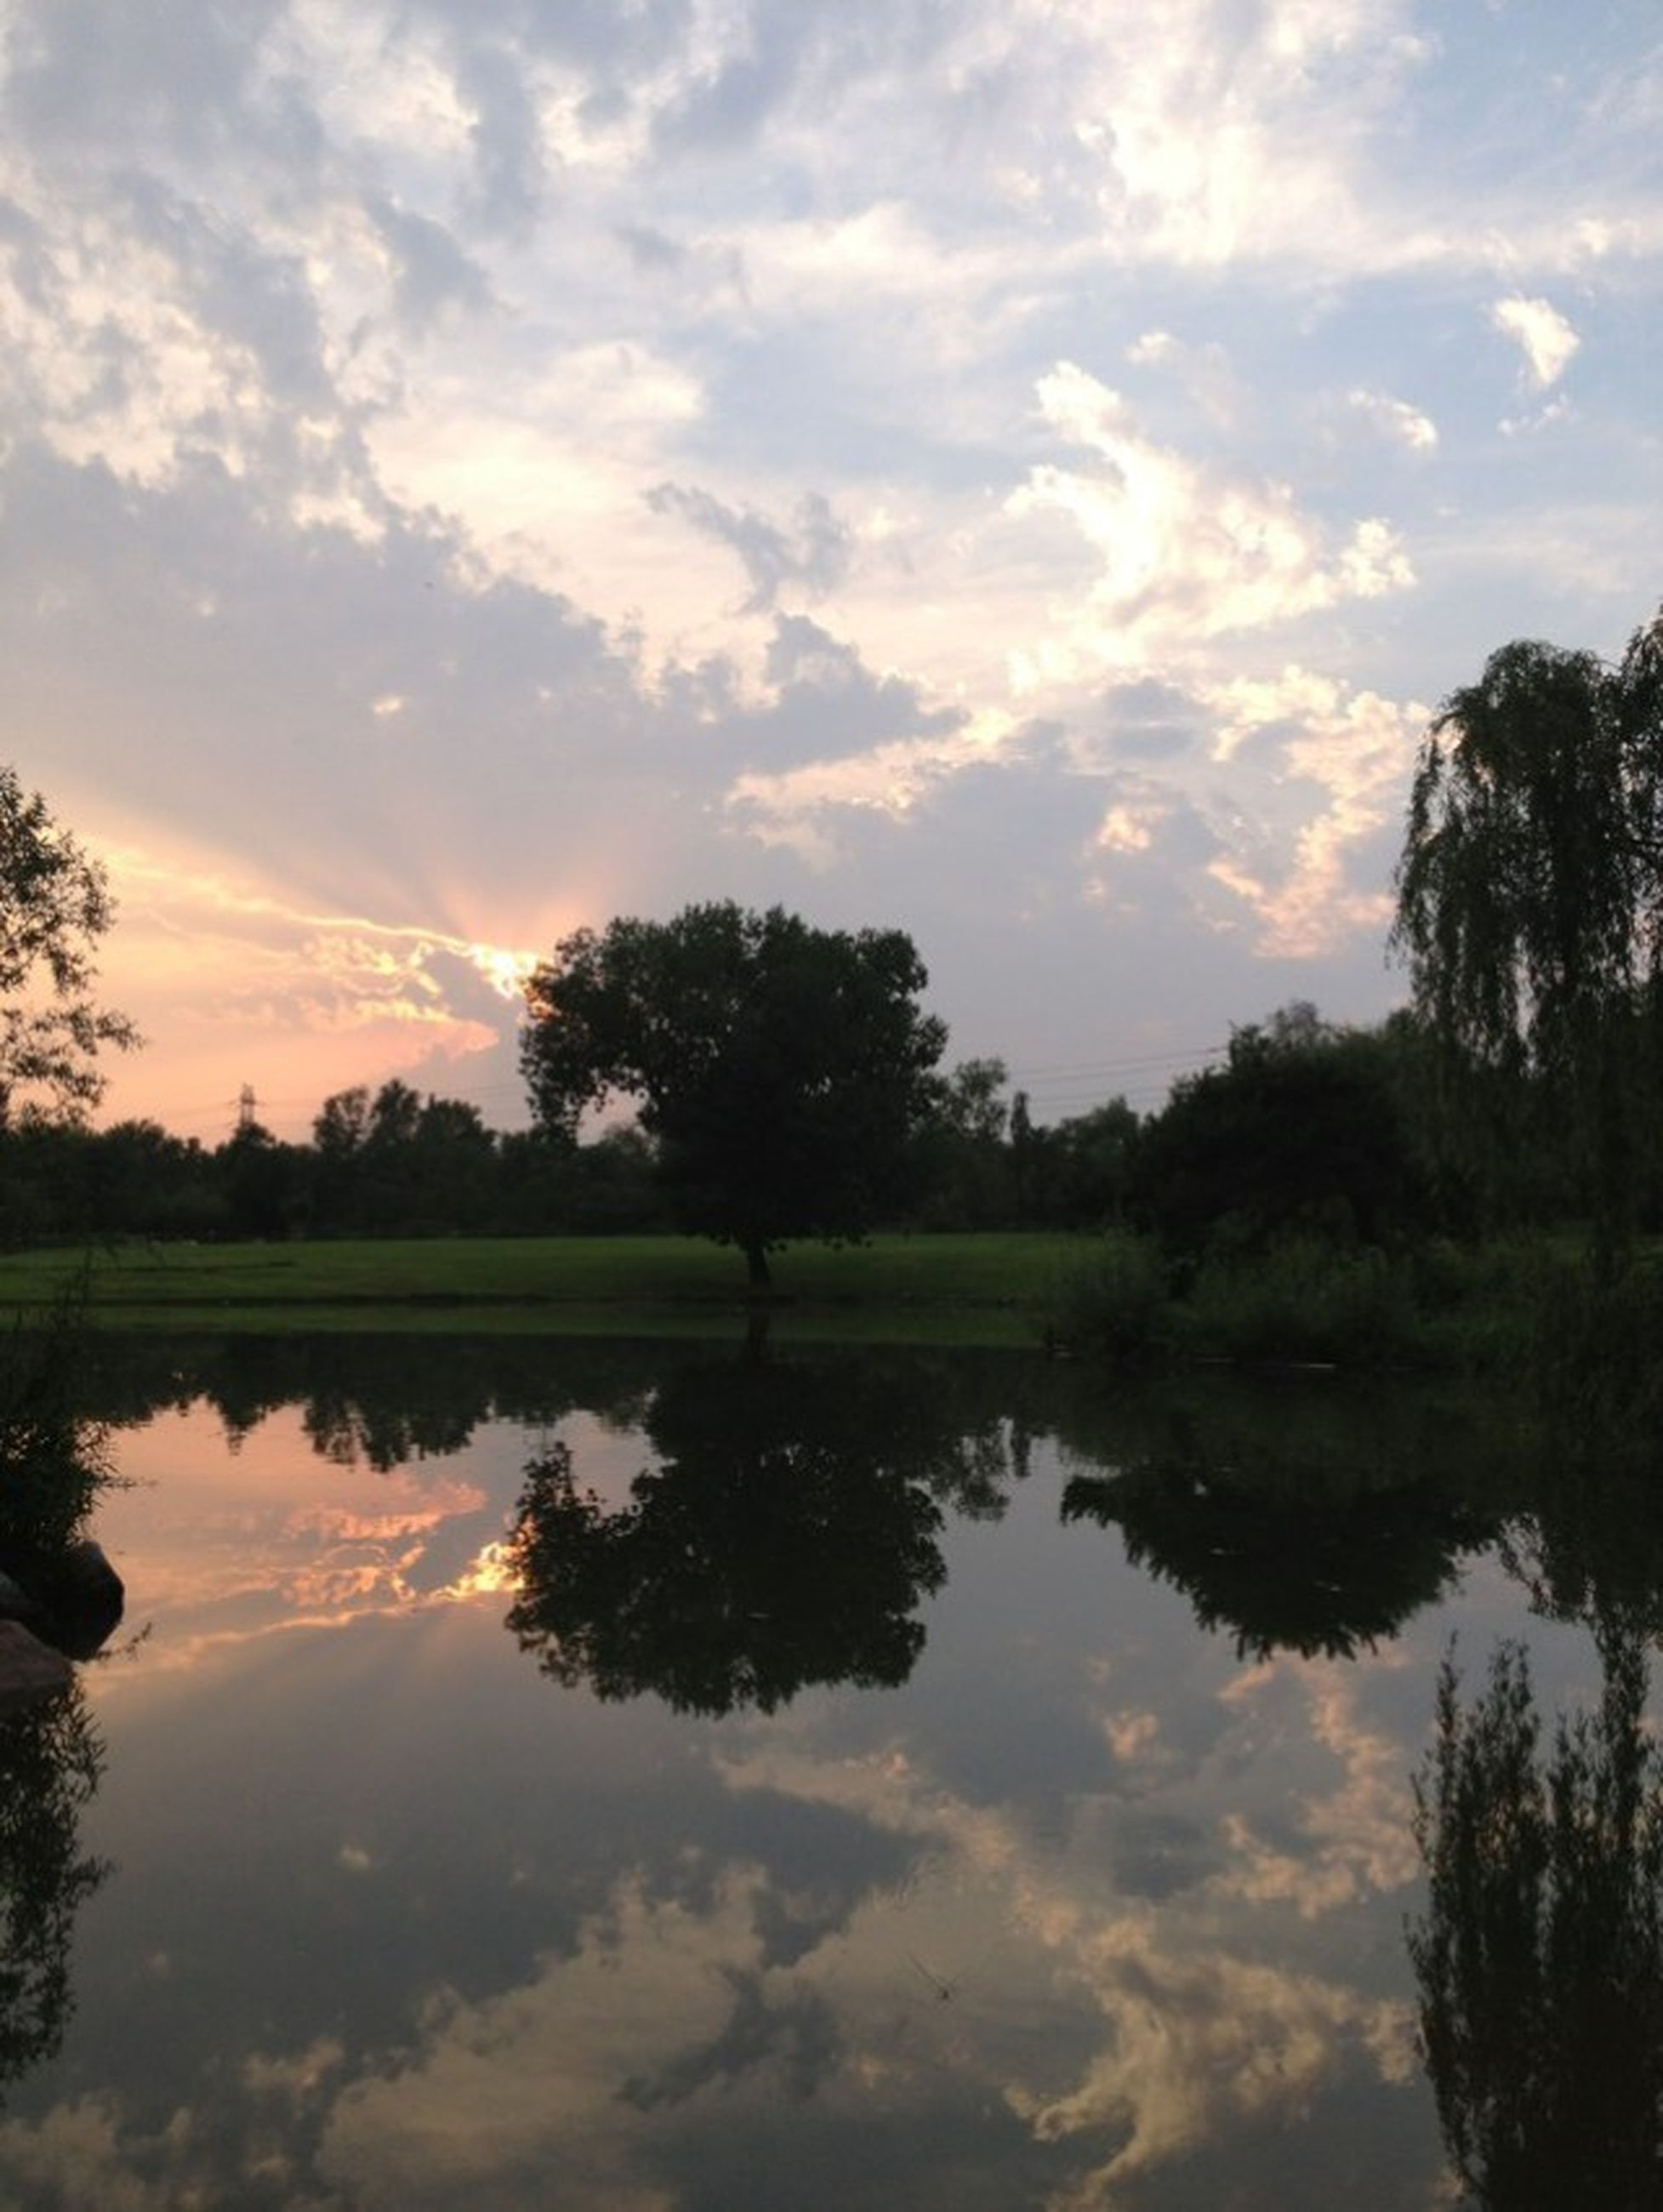 reflection, tranquil scene, tree, tranquility, lake, water, sky, scenics, beauty in nature, sunset, silhouette, cloud - sky, nature, waterfront, idyllic, cloud, standing water, calm, cloudy, outdoors